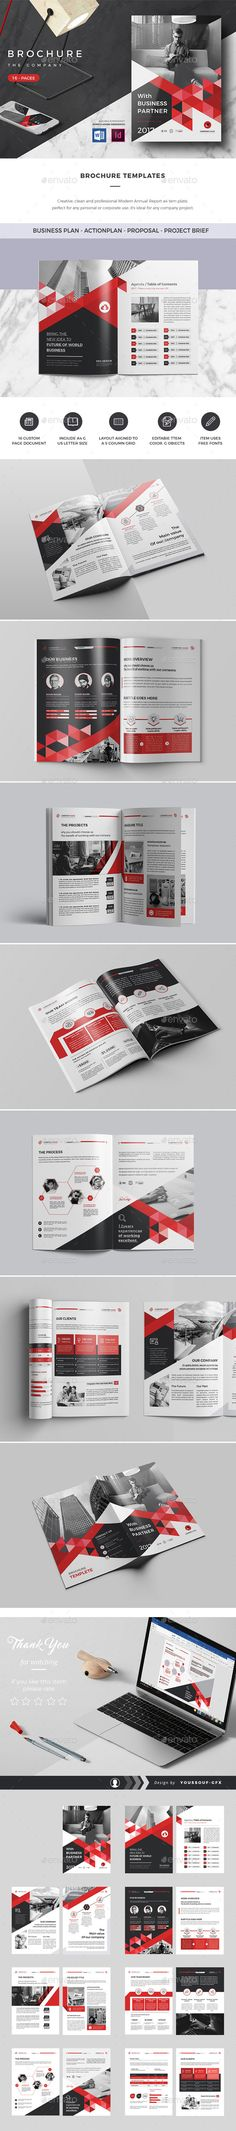 Brochure Templates — InDesign INDD #trading #clean • Download ➝ https://graphicriver.net/item/brochure-templates/20495589?ref=pxcr